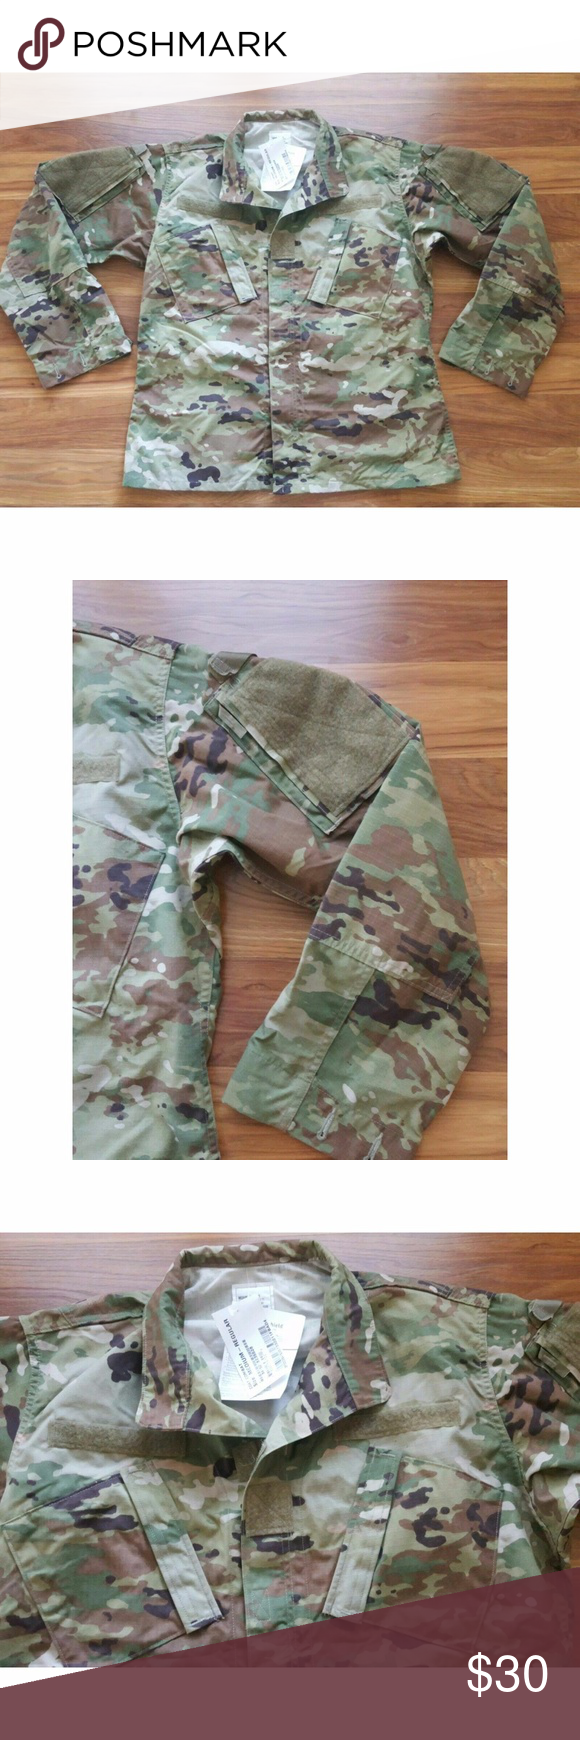 New With Tags Army Ocp Scorpion W2 Multicam Top M New With Tags Colorful Shirts Multicam